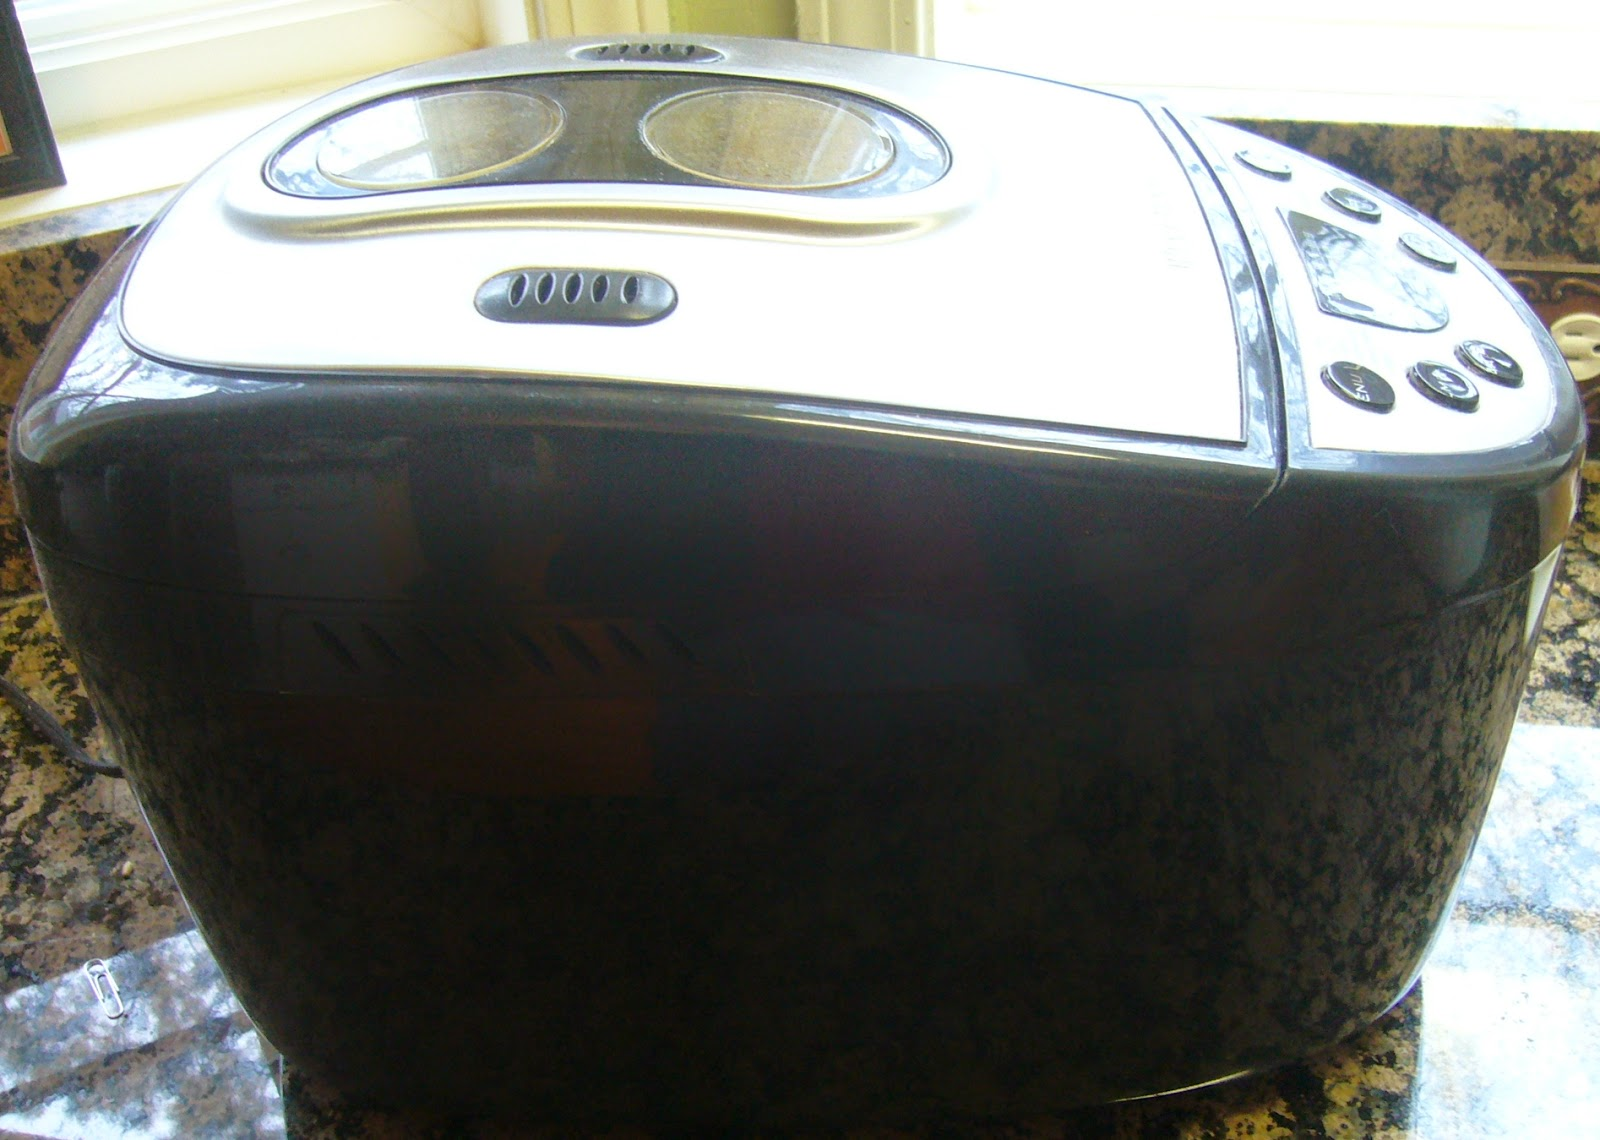 West Bend 2.5 Pound Hi-Rise Bread Machine Review